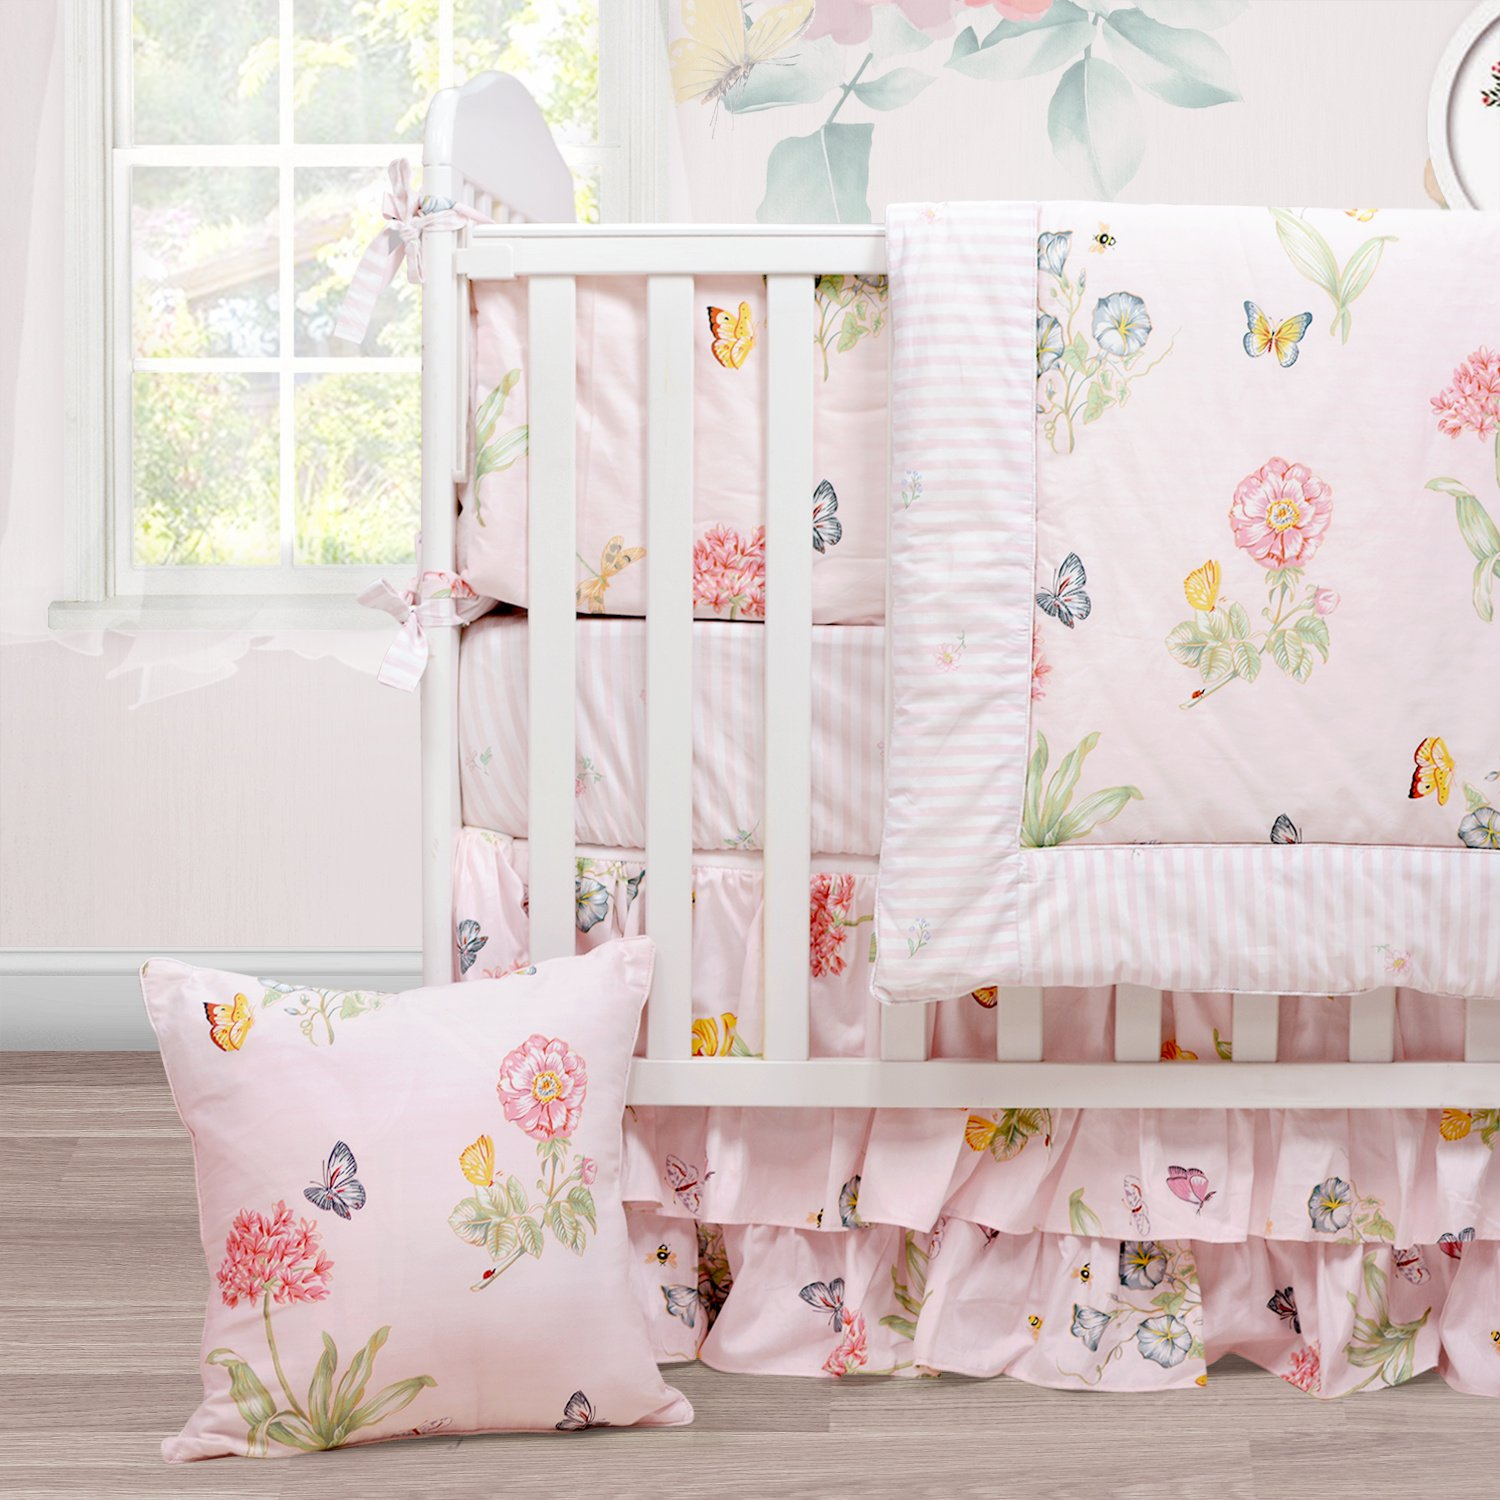 1d82c1878064f Cheap Cute Baby Girl Bedding, find Cute Baby Girl Bedding deals on ...